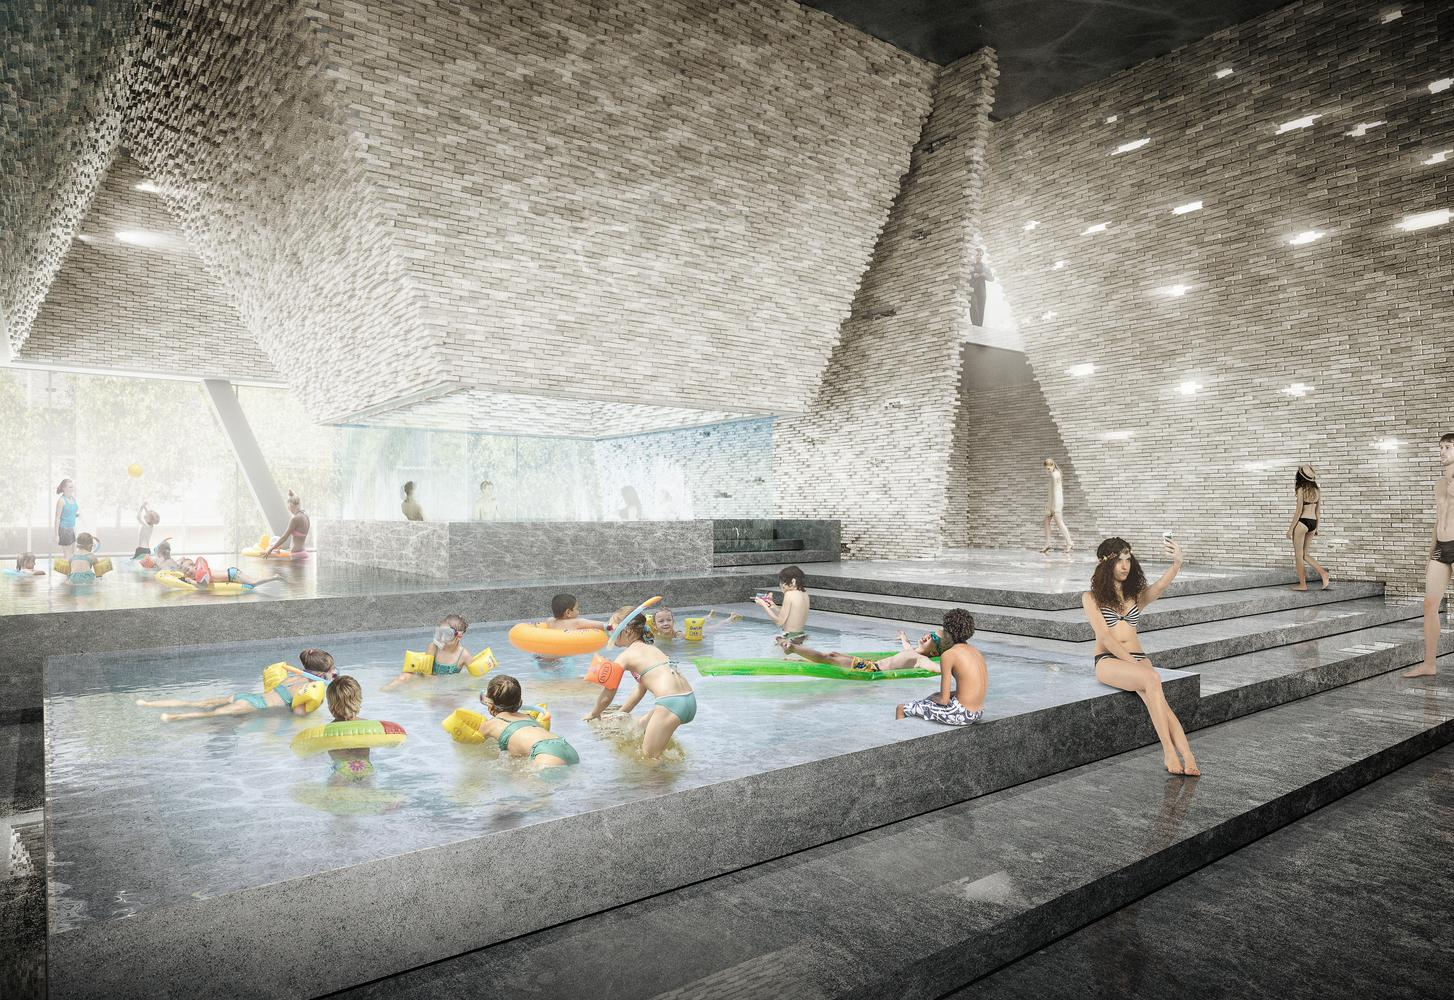 The Danish Water Culture Center is part of a wider masterplan for Paper Island created by architecture firm COBE / Kengo Kuma and Luxigon